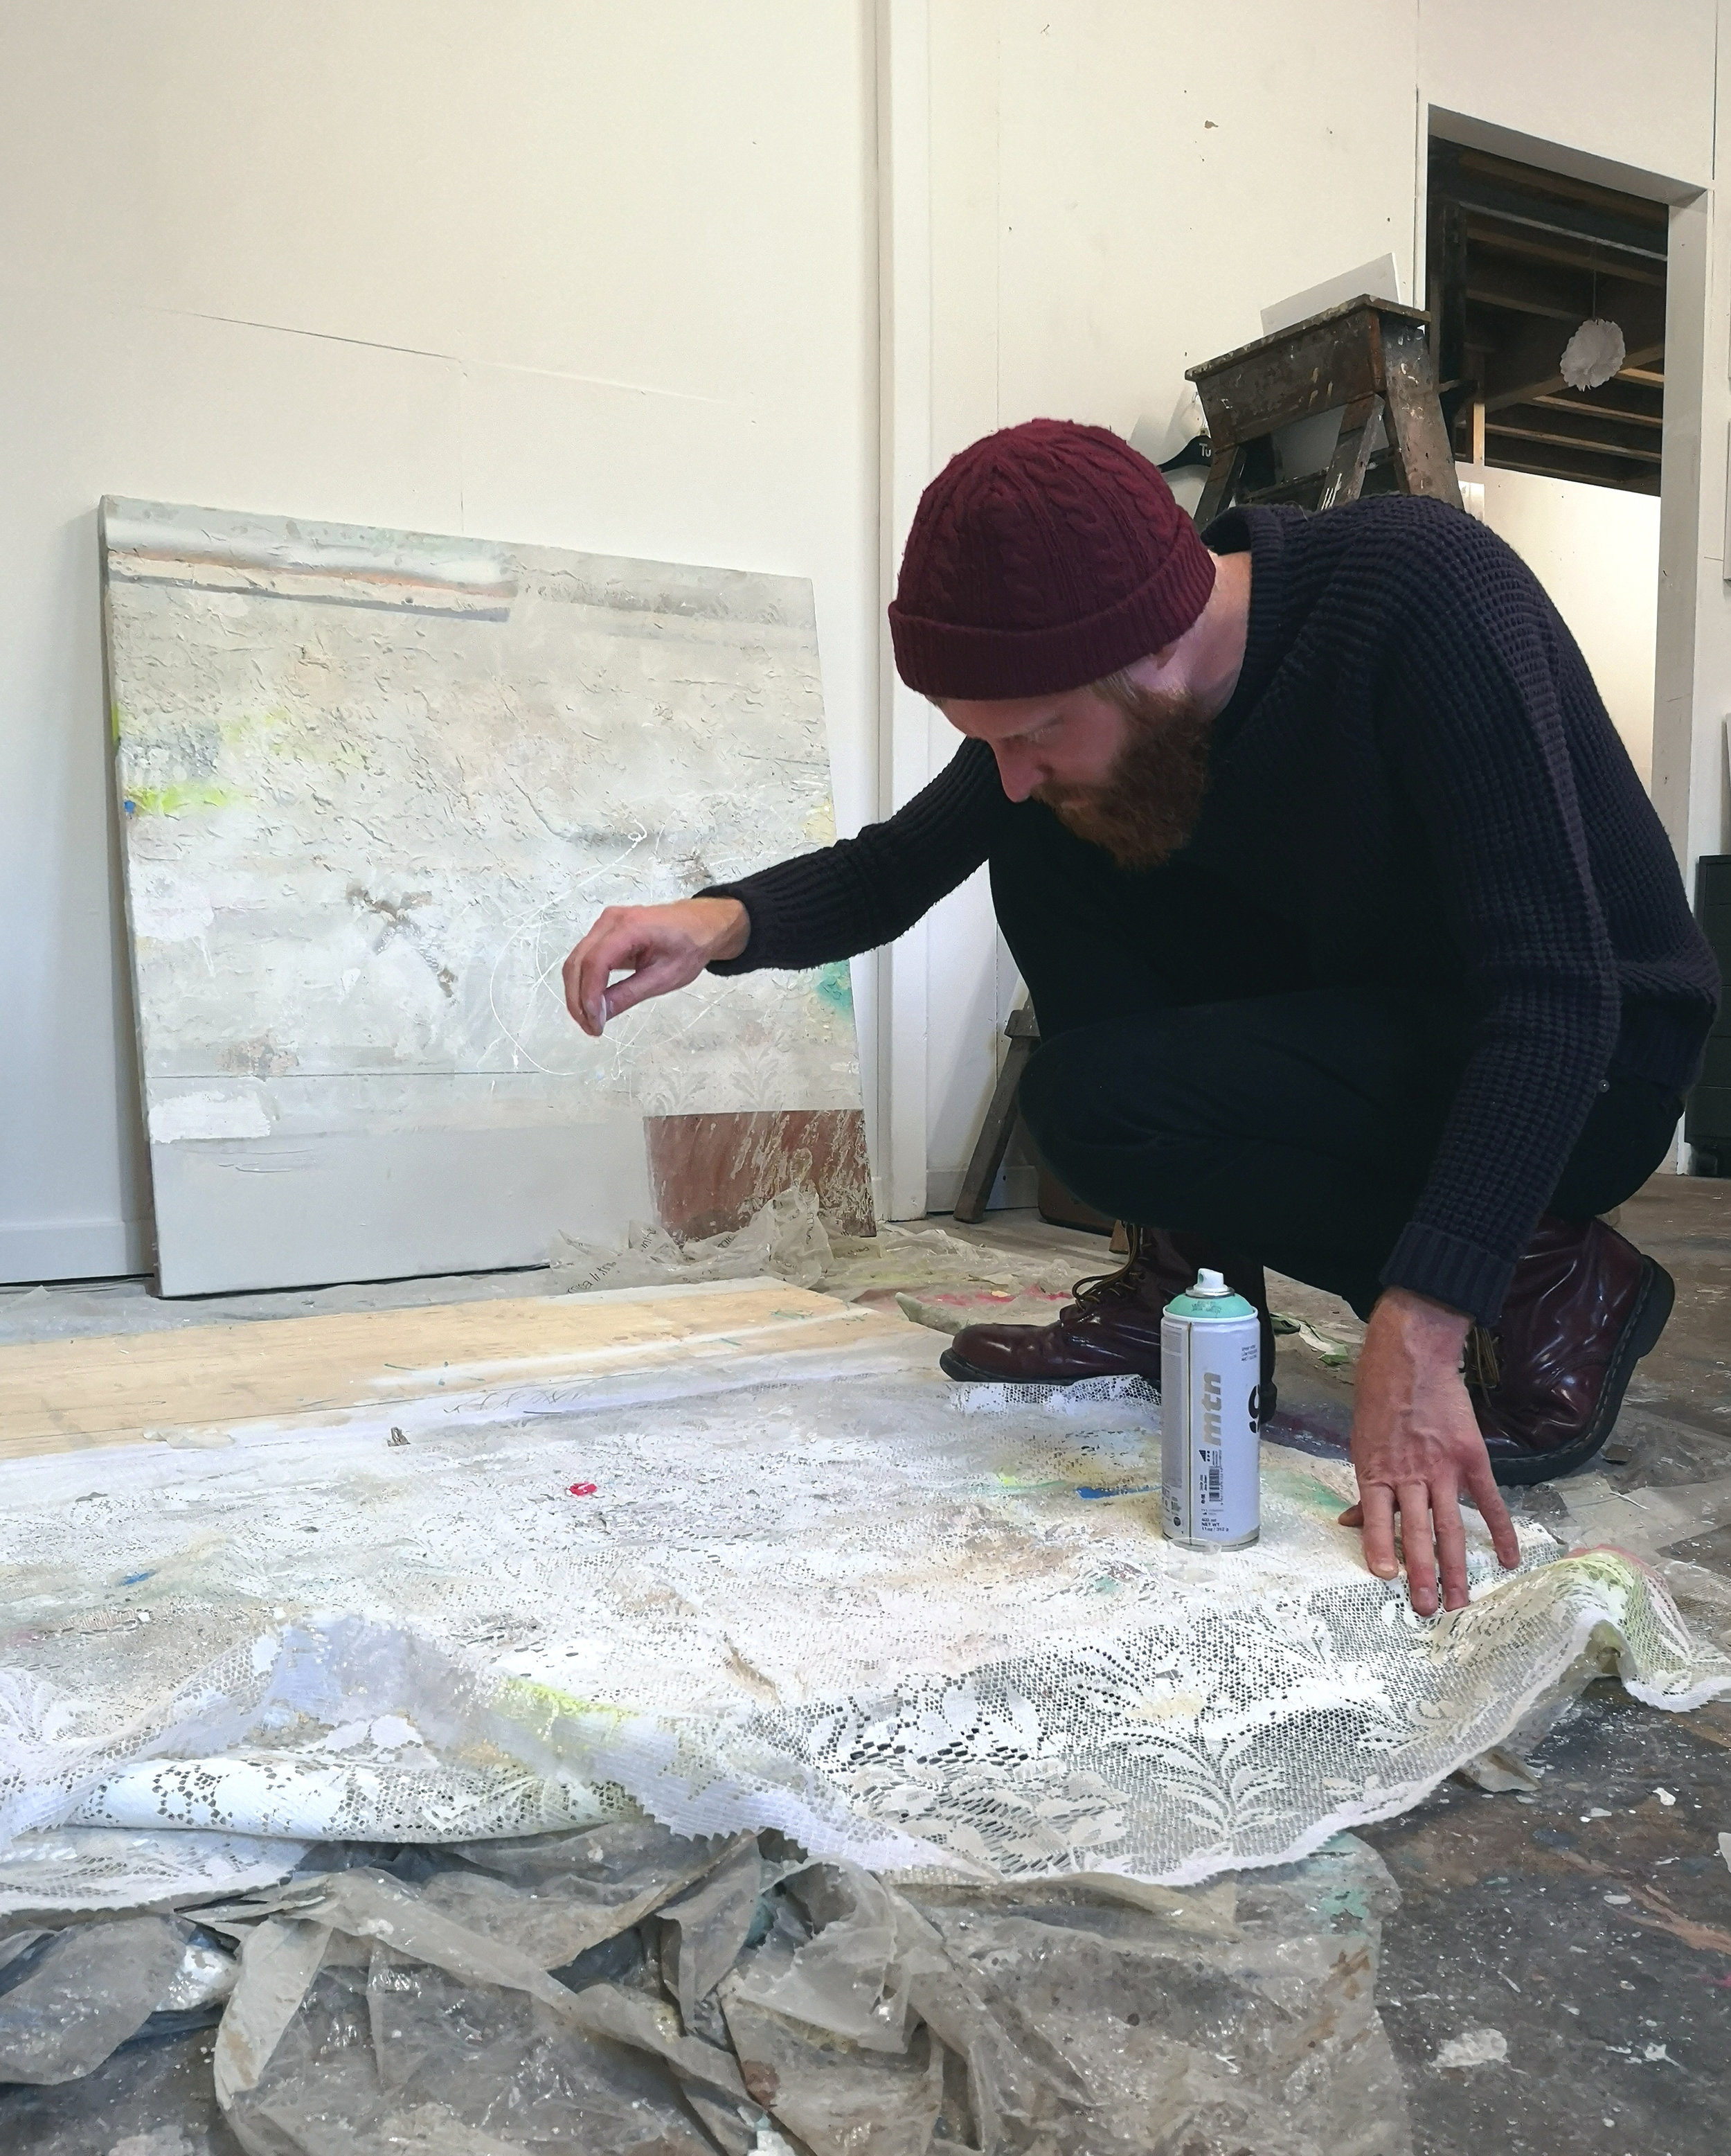 Studio 17    Andrew Wild  Andrew works primarily in the field of Painting, producing semi-abstract works that explore the intrinsic material properties of both traditional and non-traditional media. The works he produces are often quiet and reflective, evocative of the weathered and history-worn walls and surfaces of the Calder Valley.